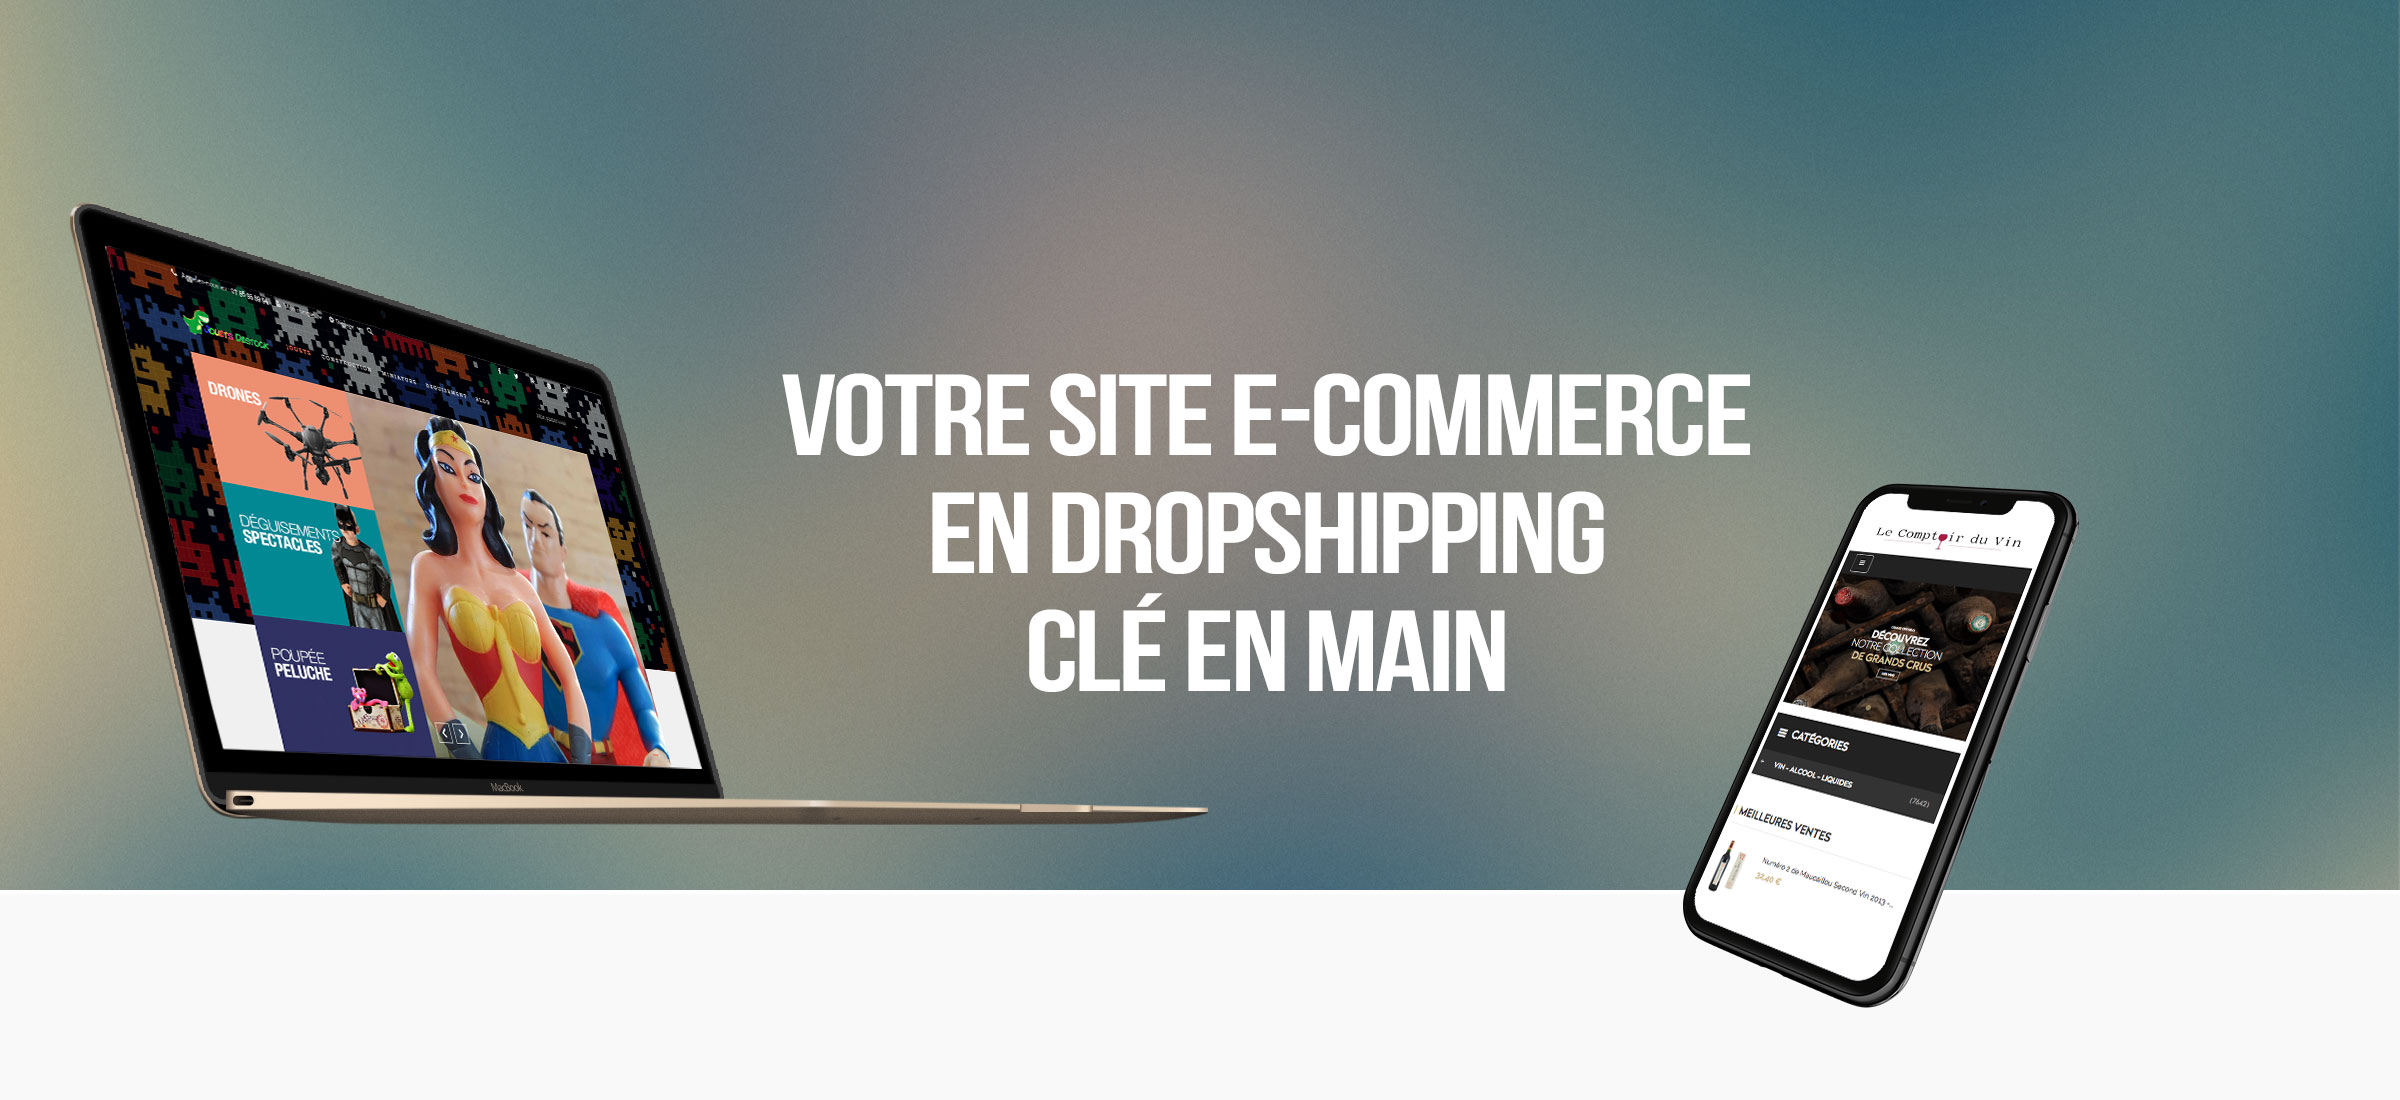 e-commerce dropshipping - site clé en main drop shipping